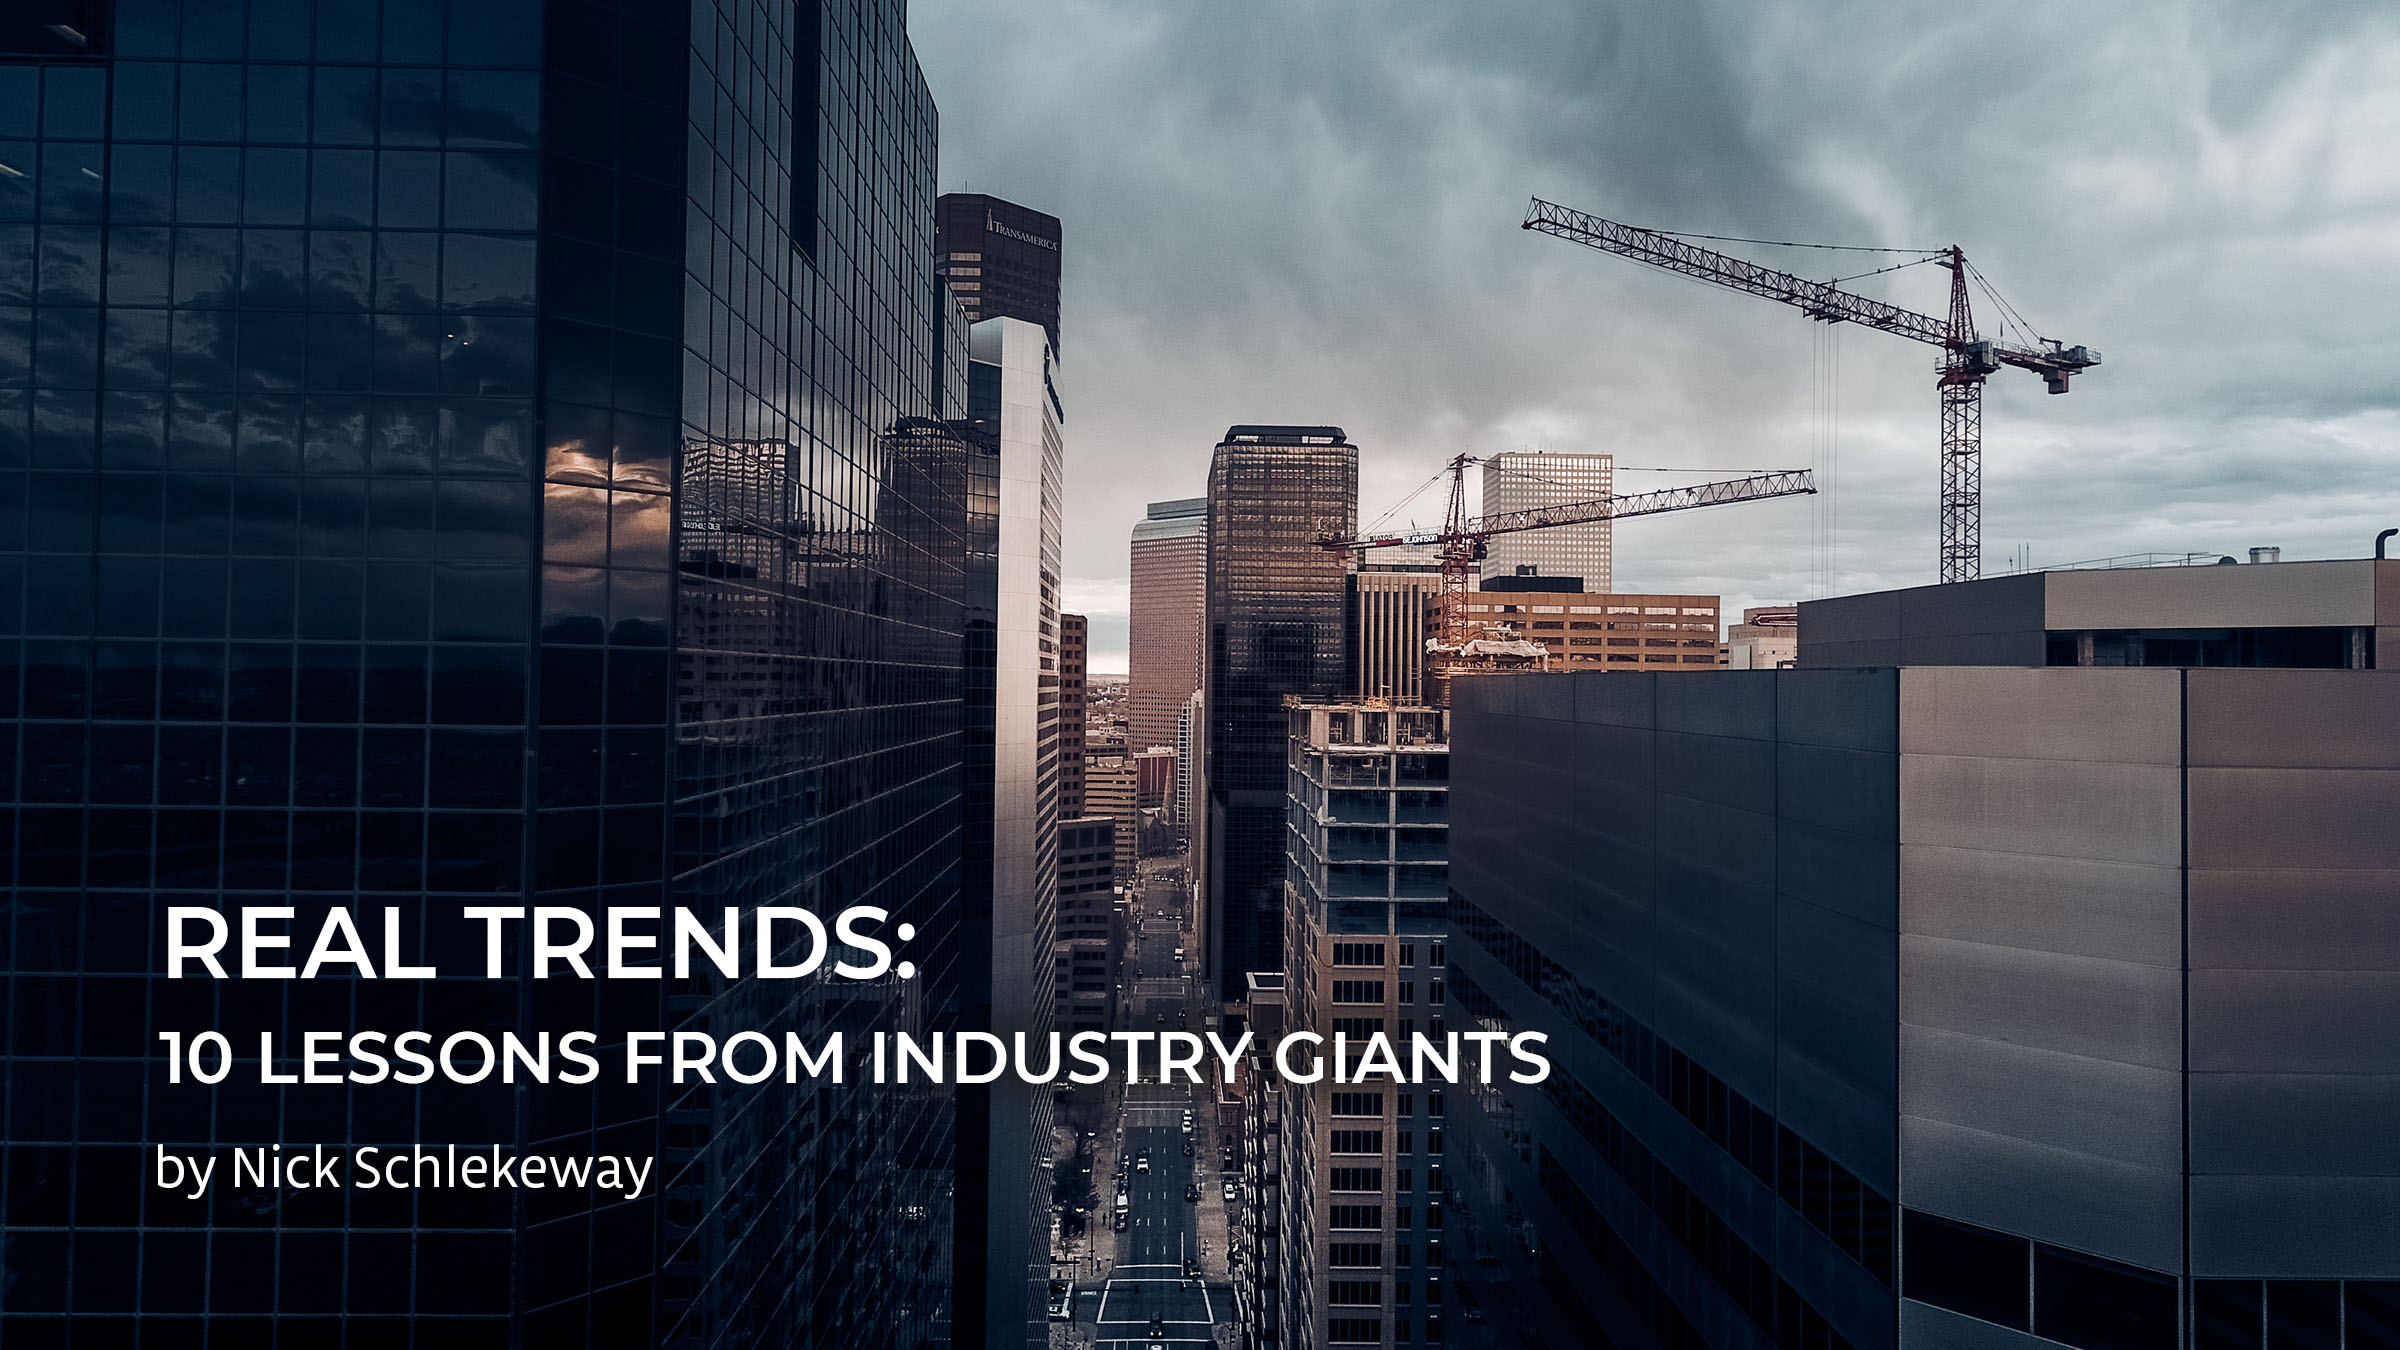 Real Trends: Ten Lessons from Industry Giants